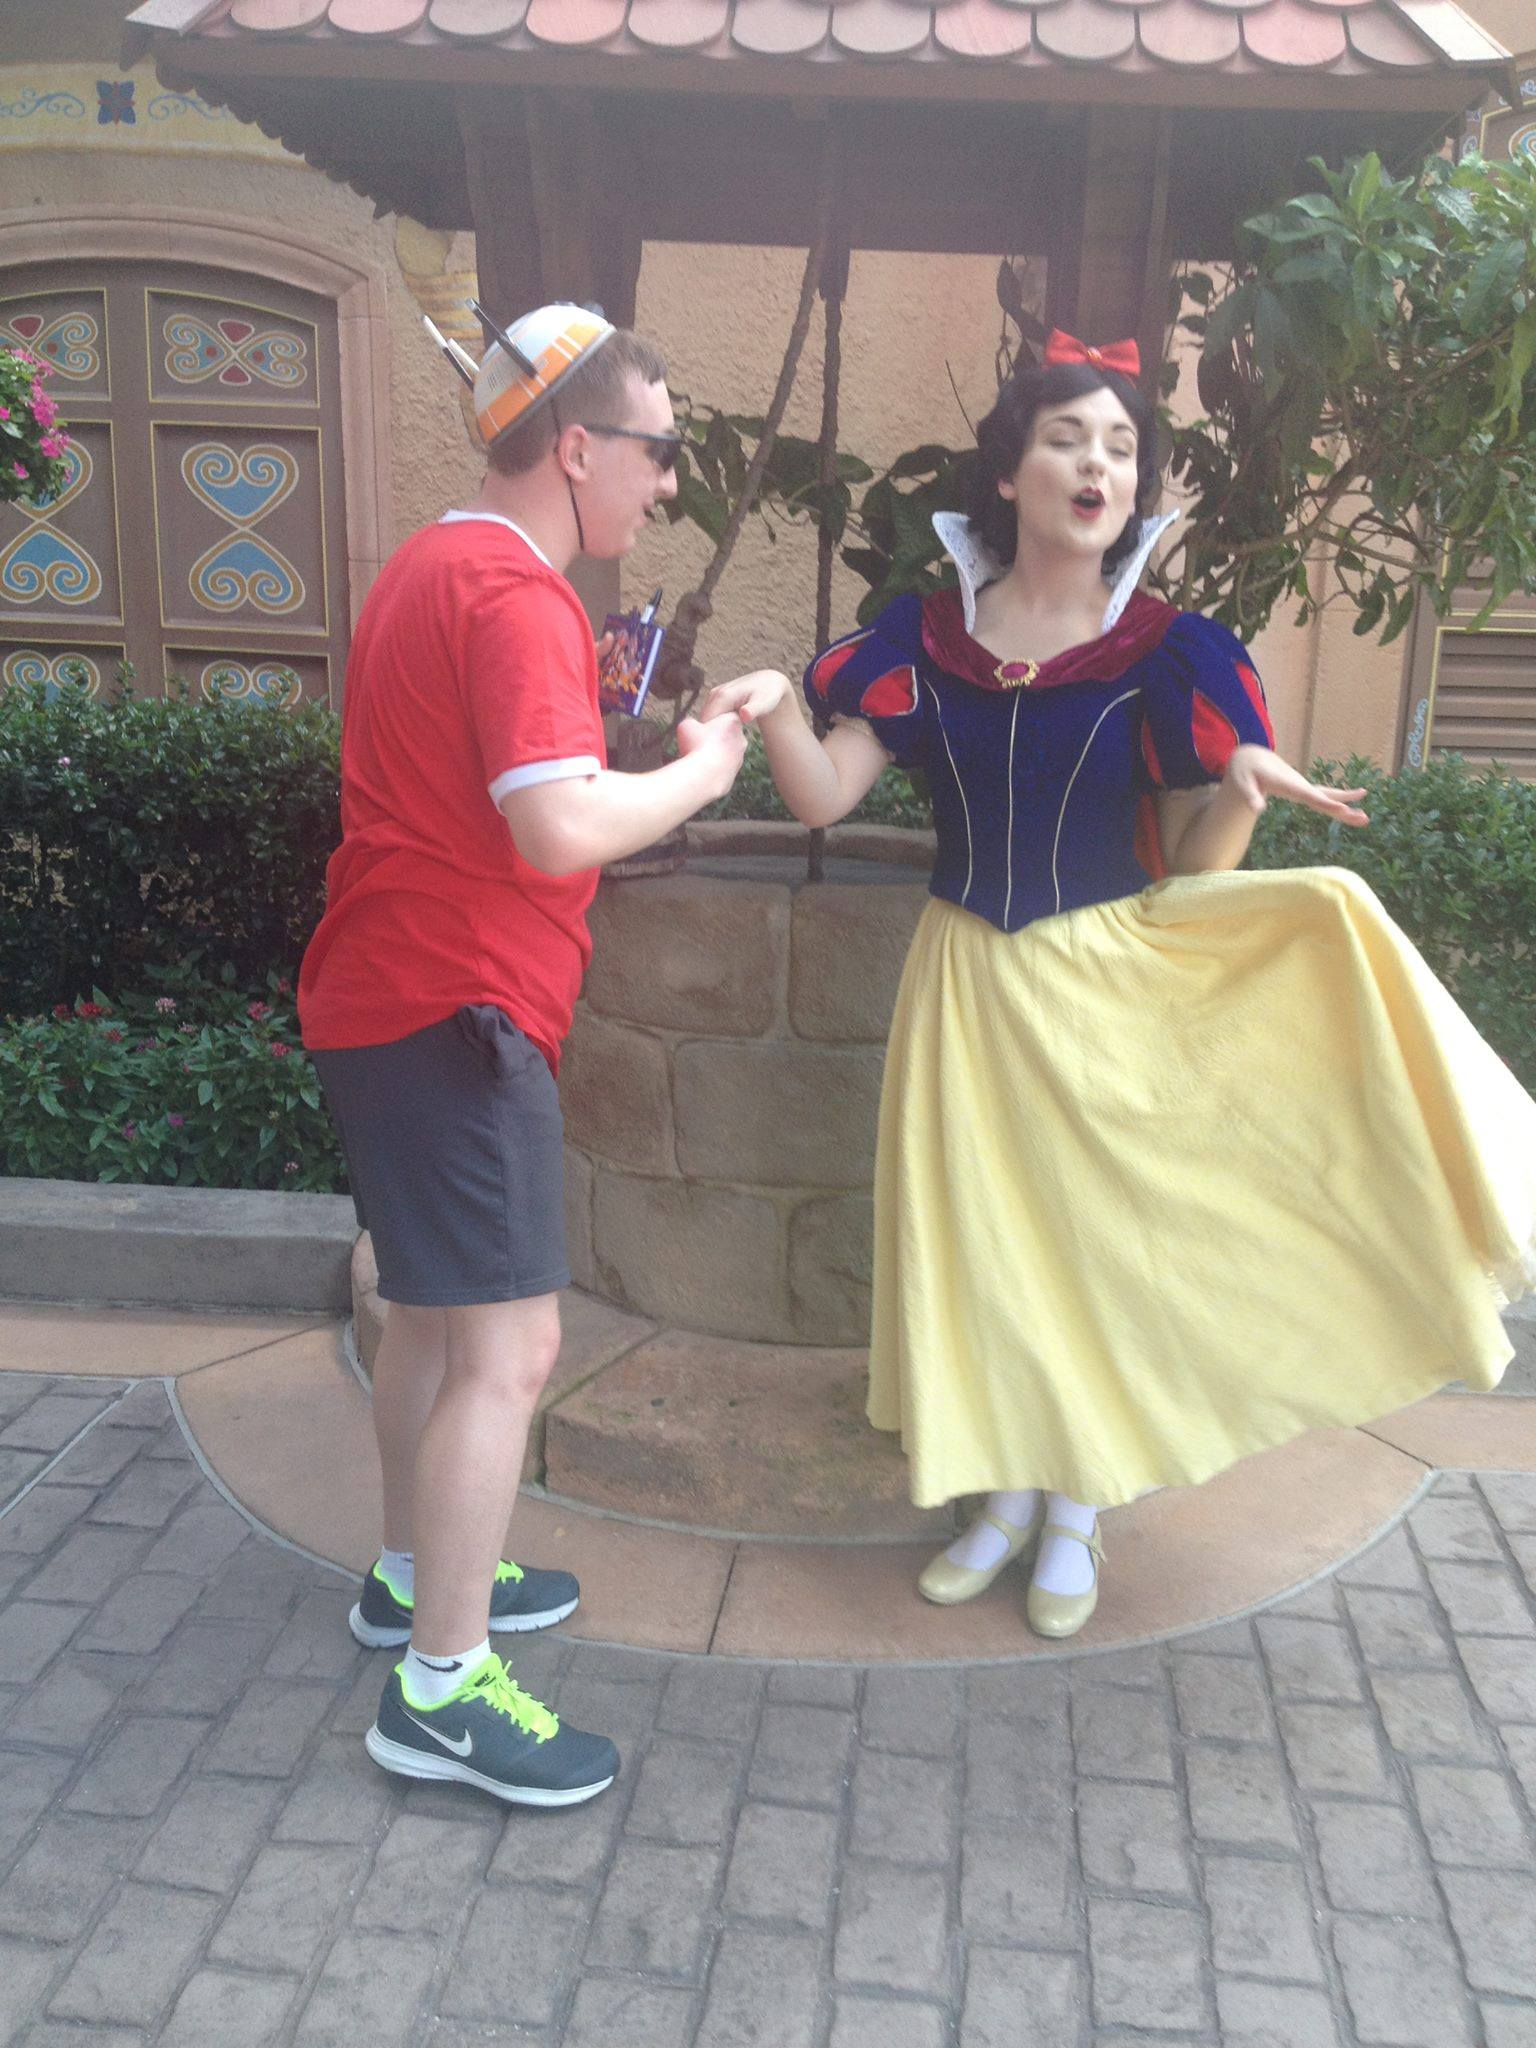 Kissing Snow White's hand